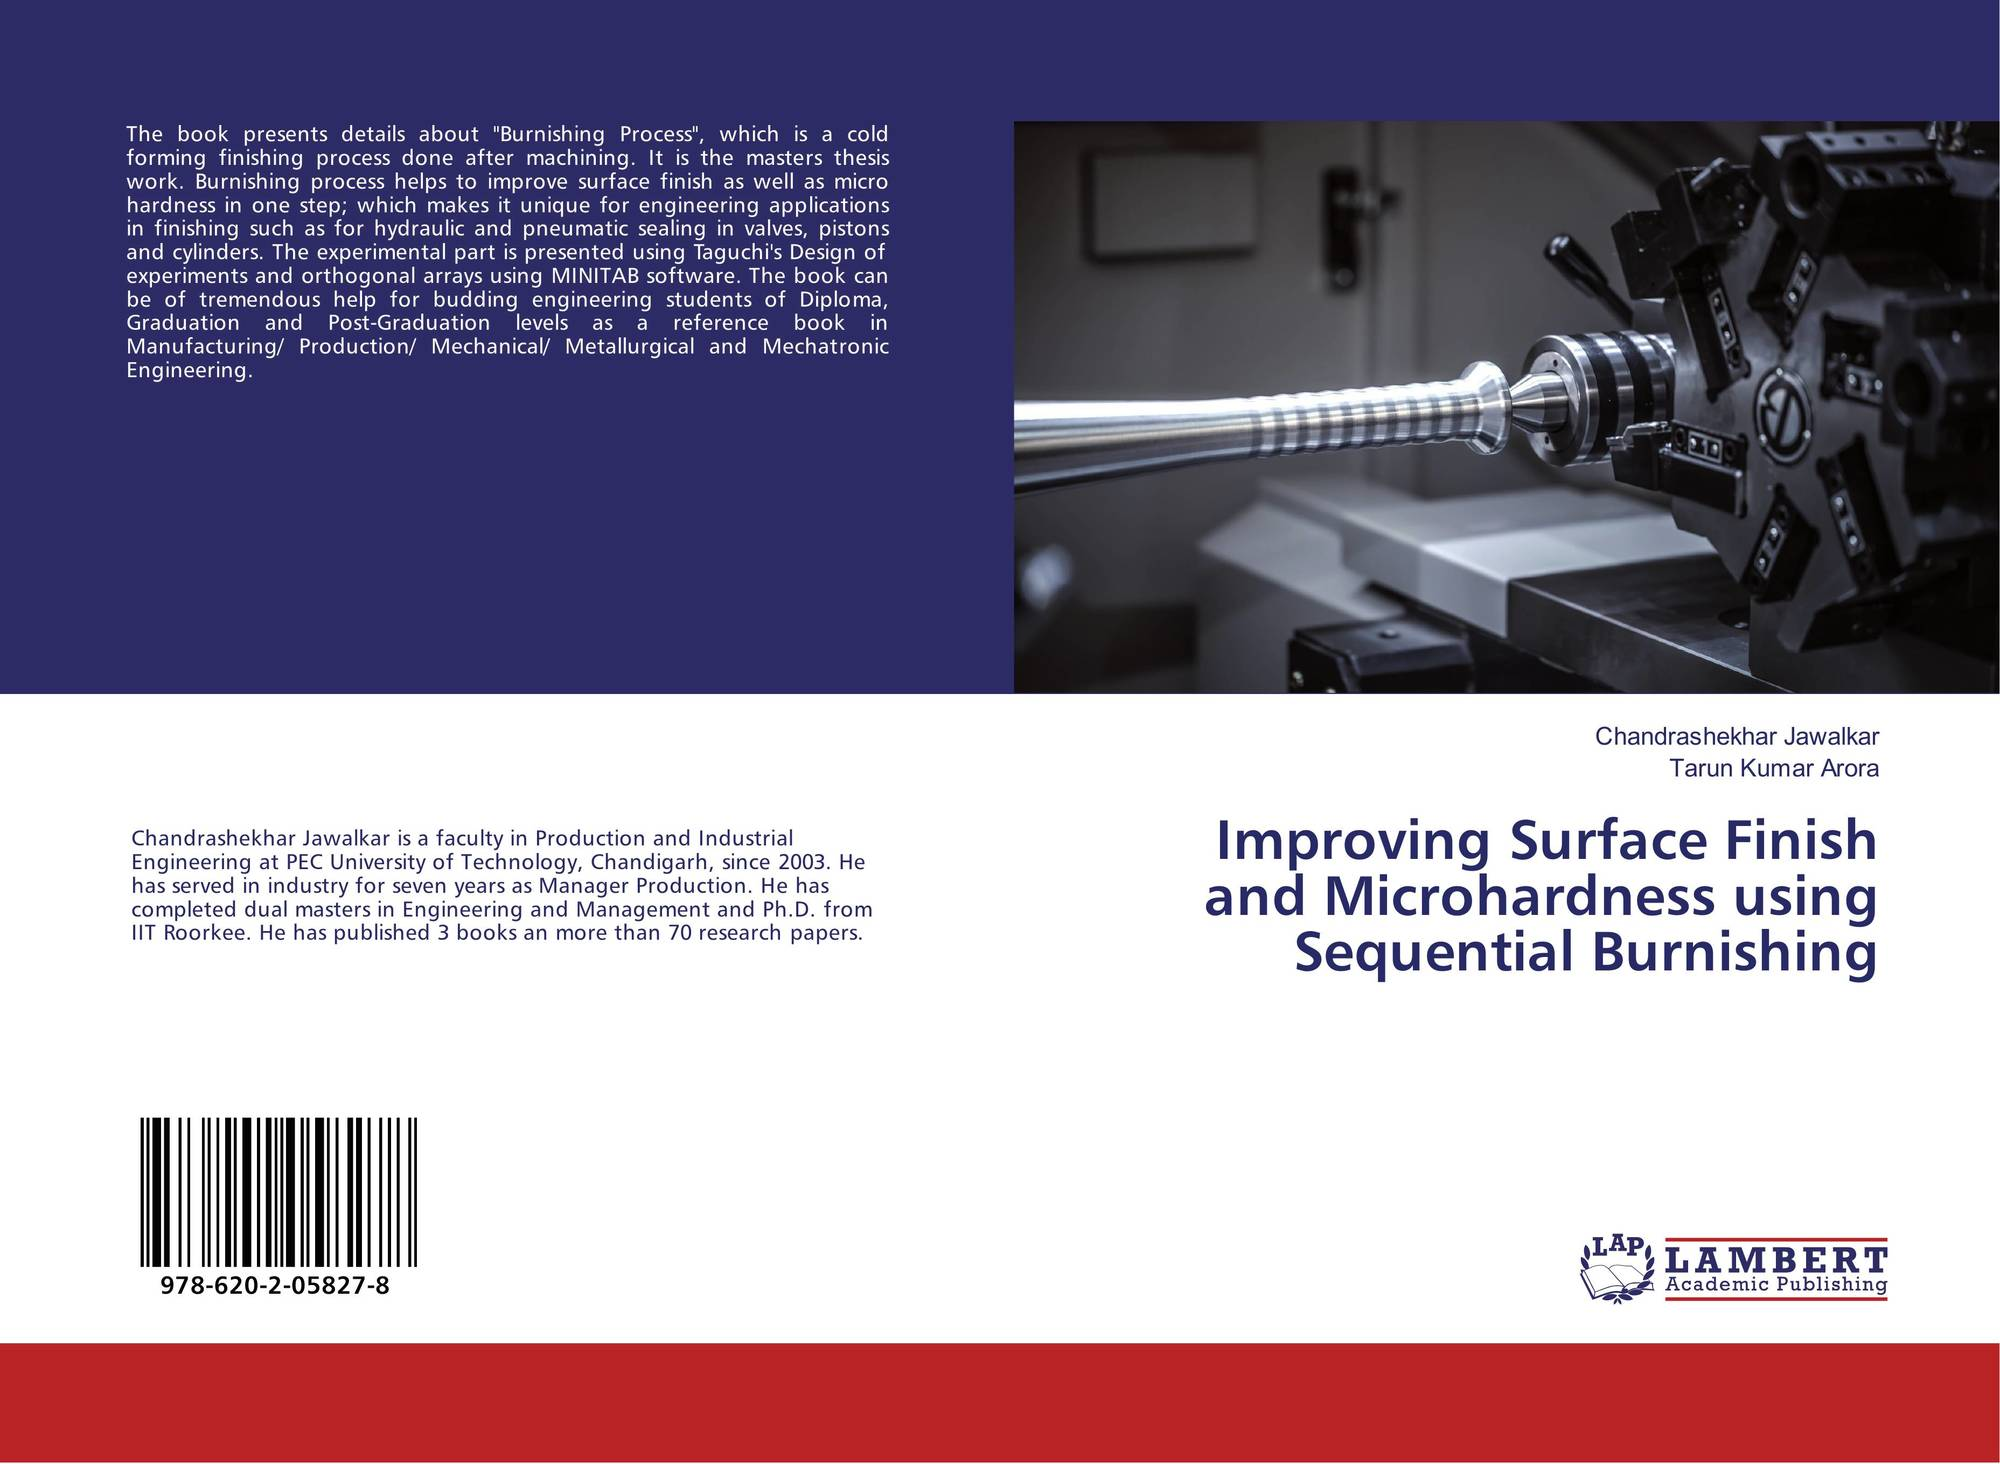 Improving Surface Finish and Microhardness using Sequential